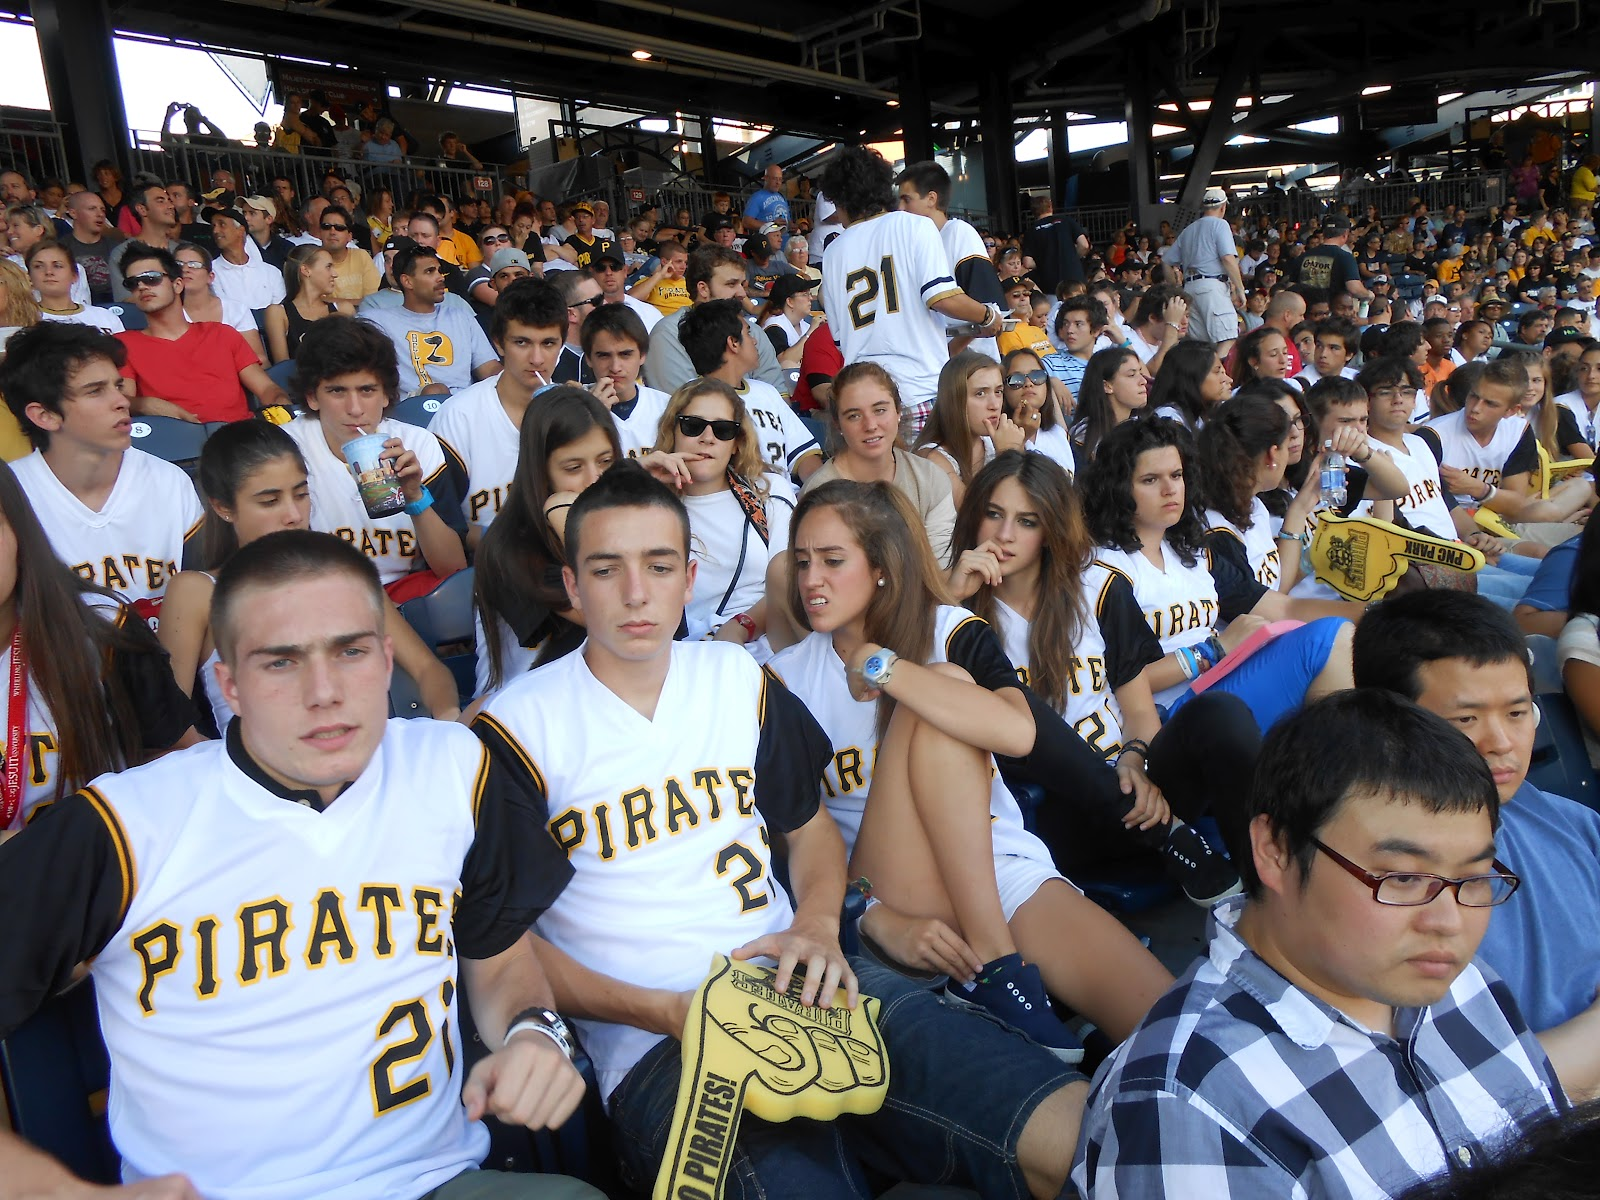 what s new at wju english language institute eli wju summer unfortunately the pirates lost but the student still had a good time rocking out their pittsburgh pirates gear check out the photos